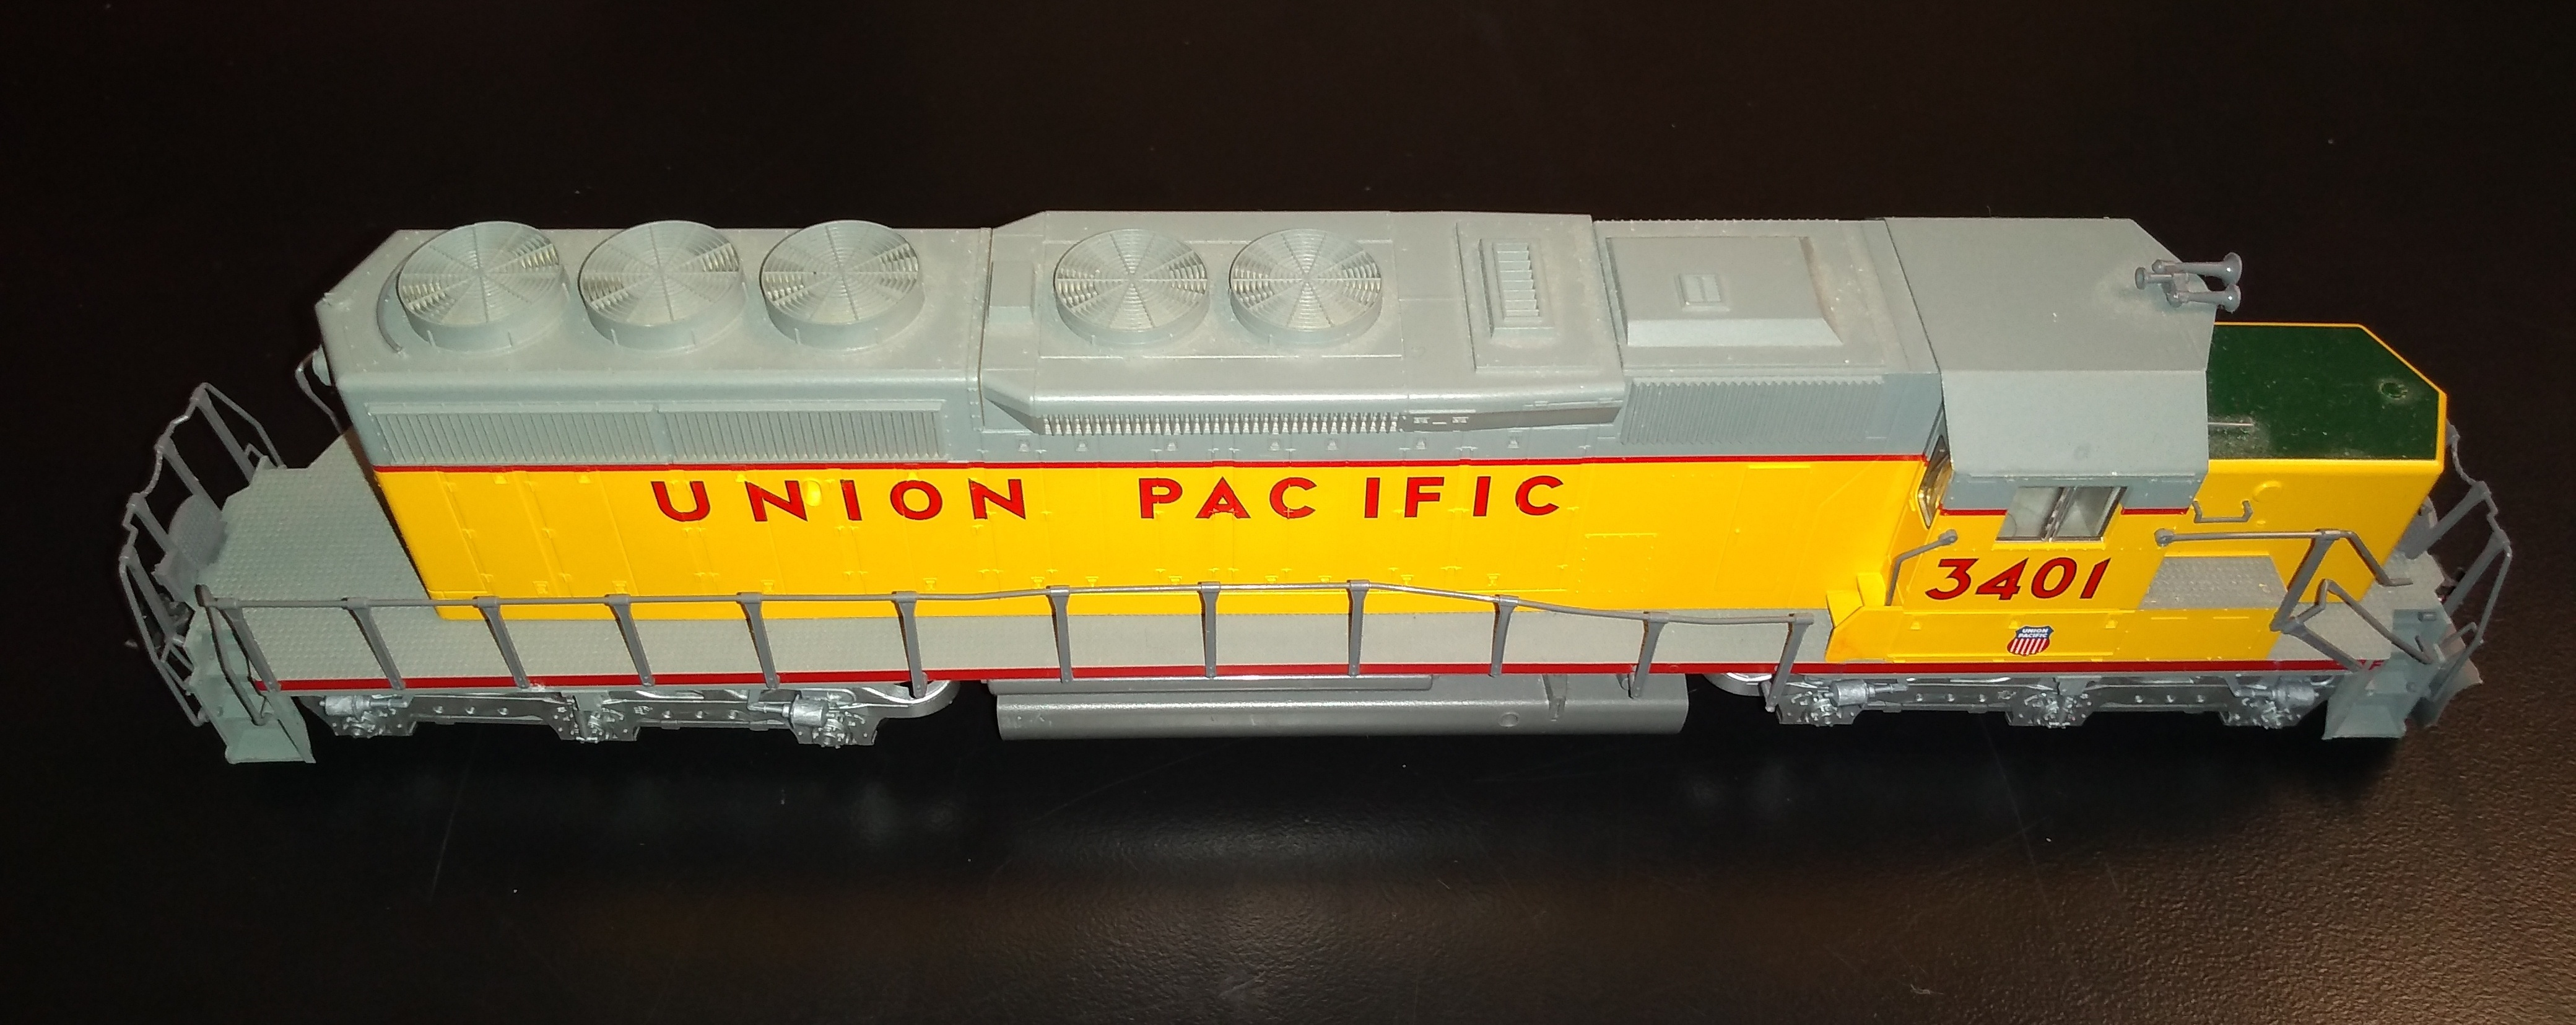 KATO UNION PACIFIC TRAIN